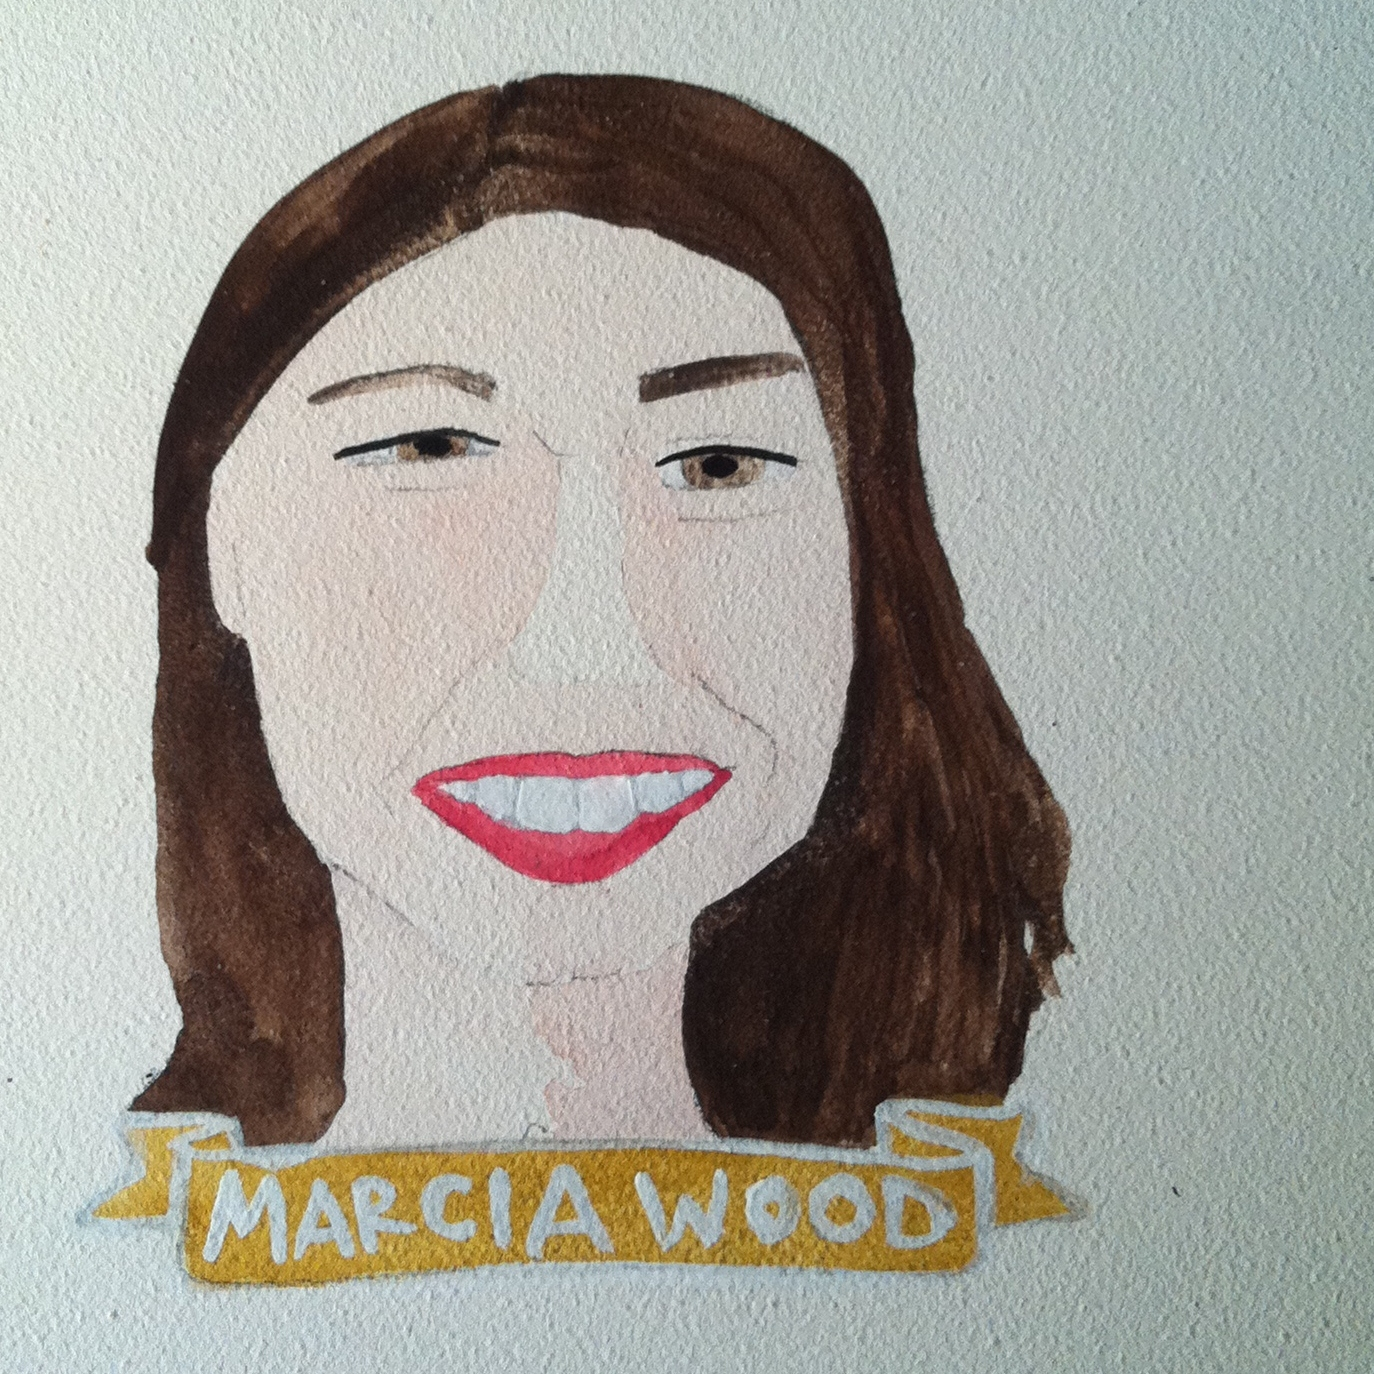 Talent Loves Company at Barbara Archer Gallery: 365 portraits by Lydia Walls - Marcia Wood